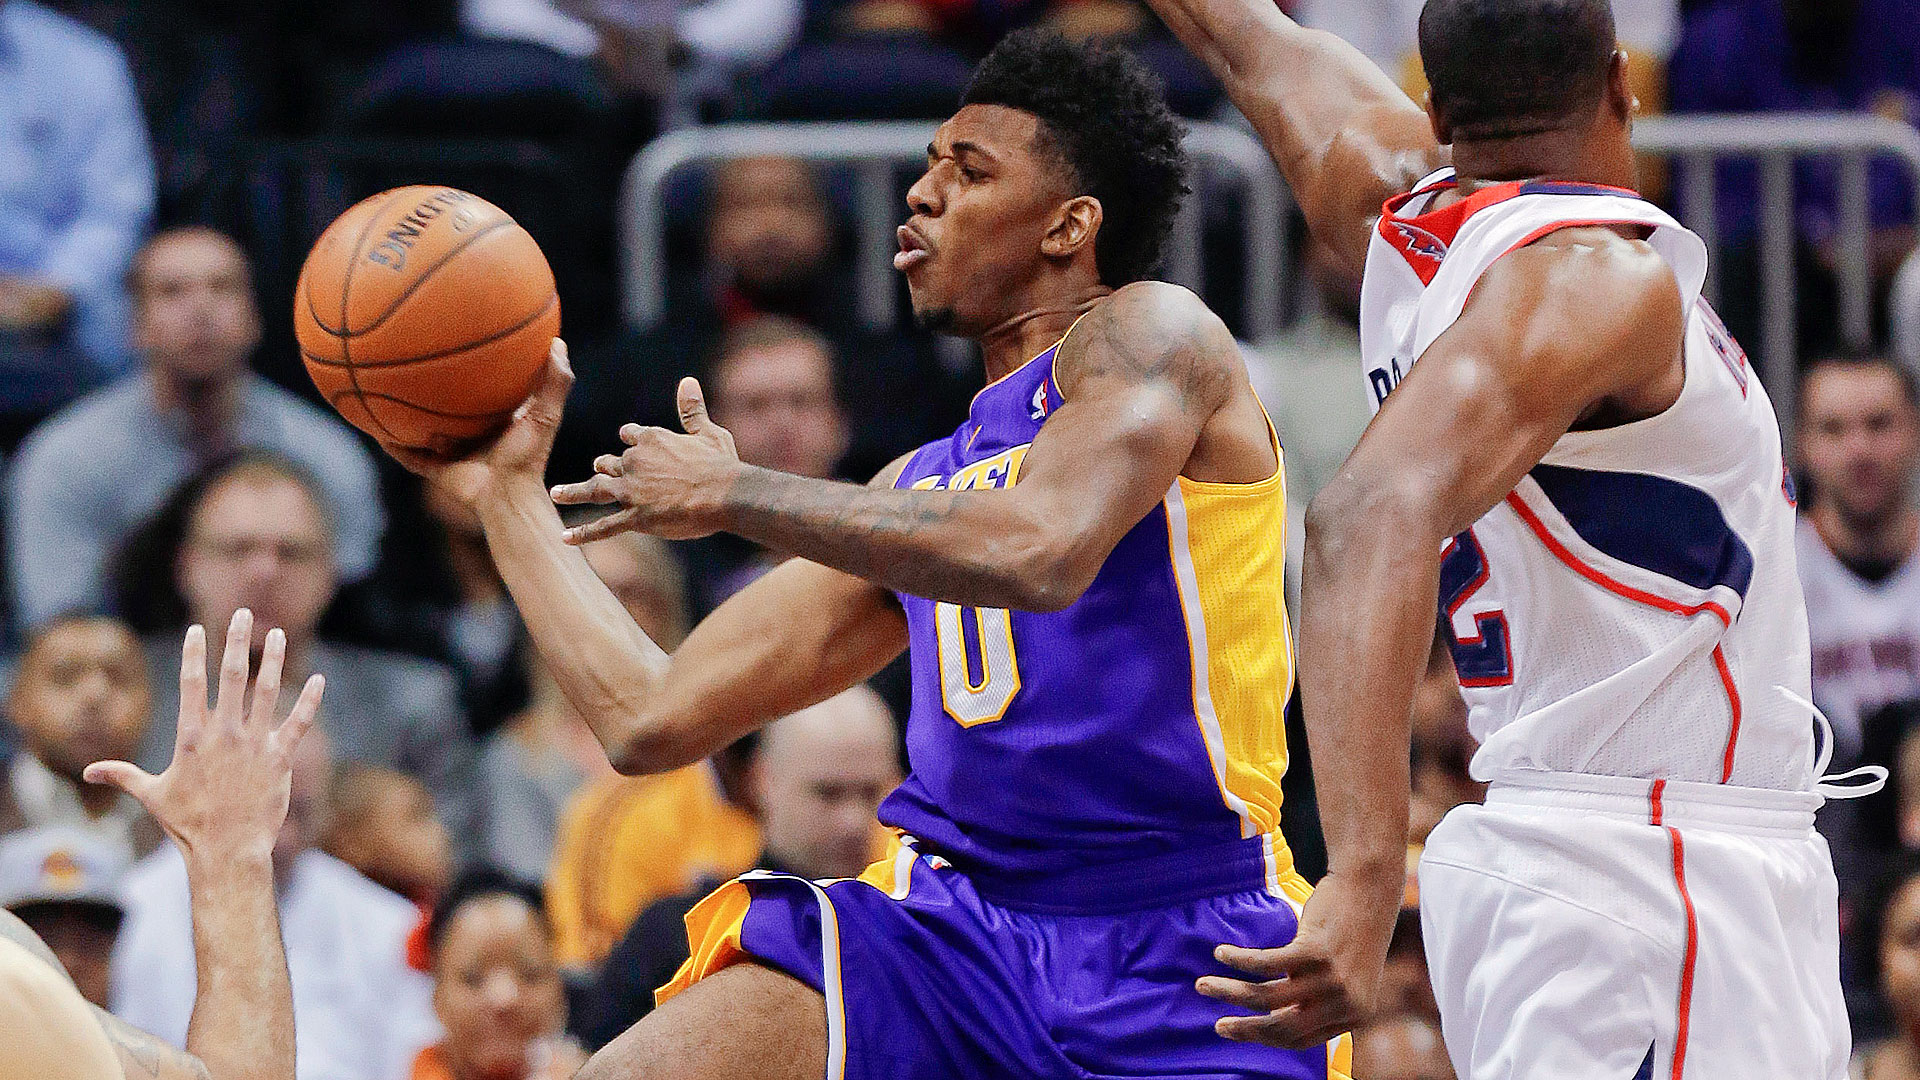 Nick Young-121713-AP-FTR.jpg